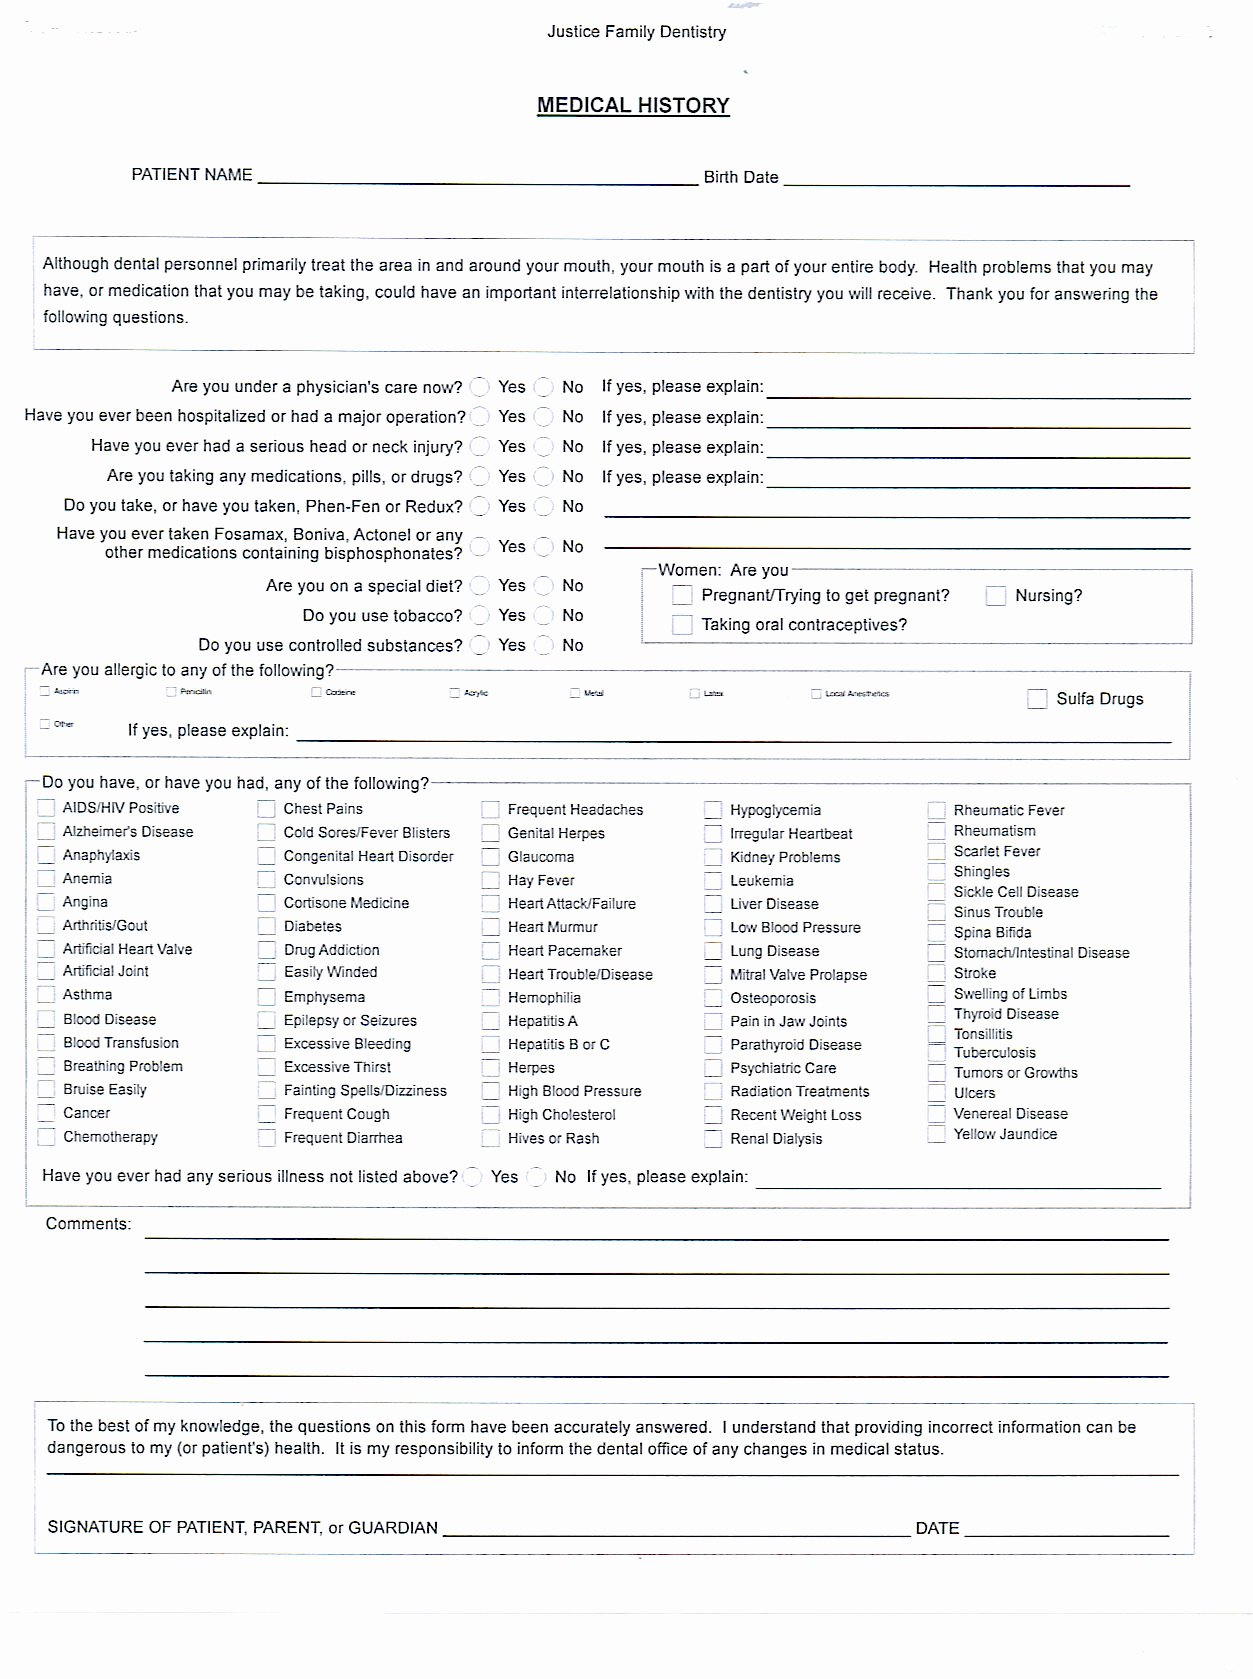 Free Patient Information form Template Best Of Medical History form – Medical form Templates